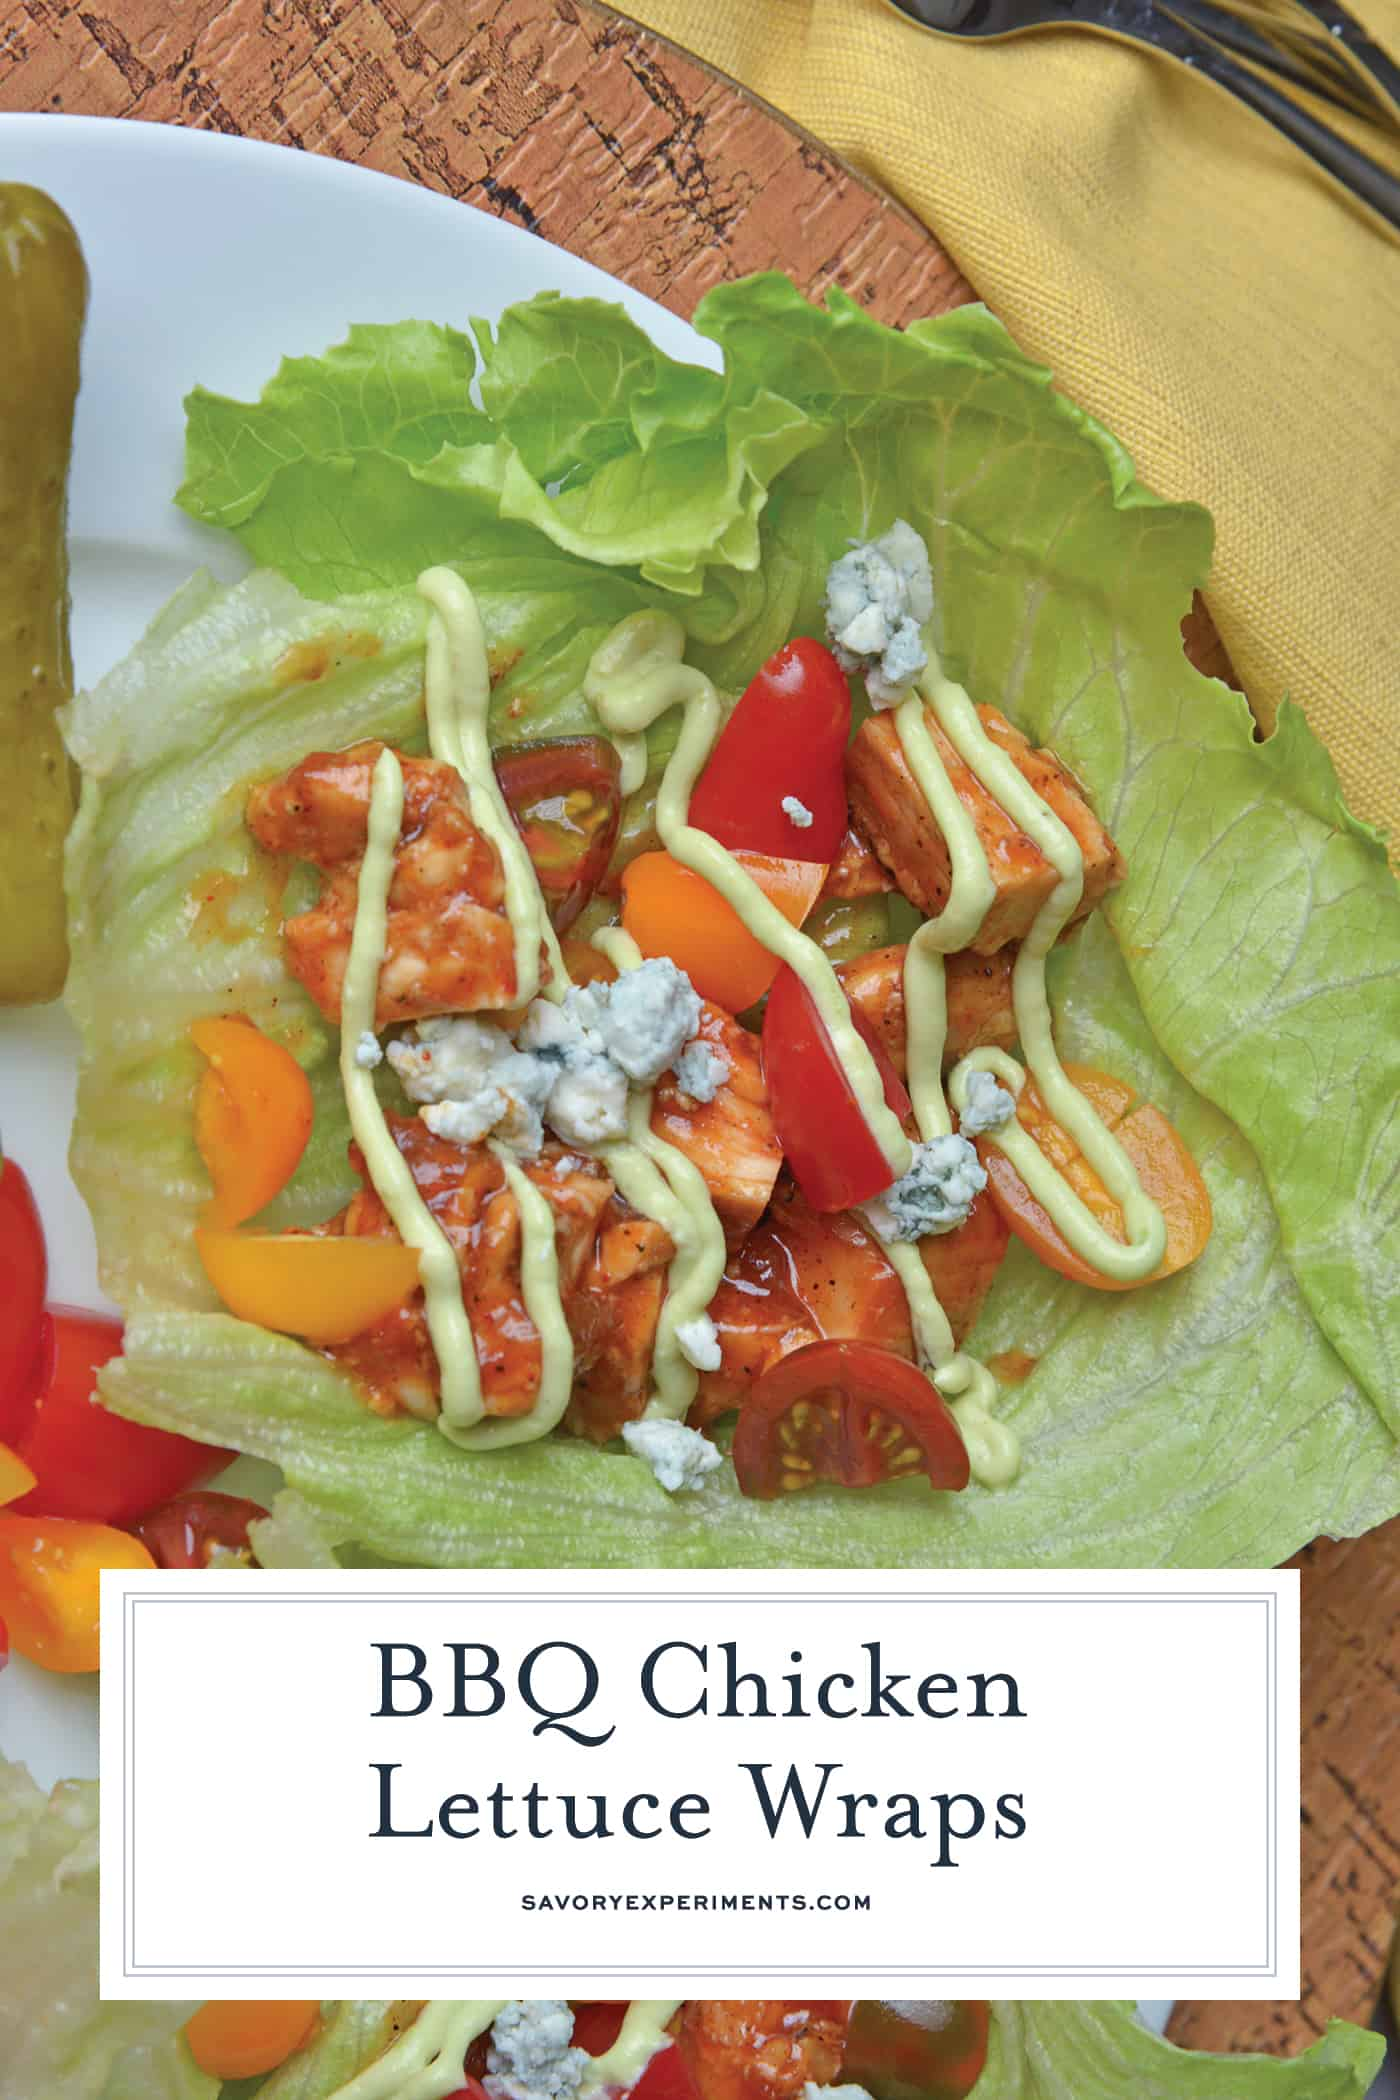 BBQ Chicken Lettuce Wraps use seasoned chicken with your favorite BBQ sauce and wrap them in crispy lettuce with juicy tomatoes, blue cheese and cool avocado dressing.#lettucewraps www.savoryexperiments.com